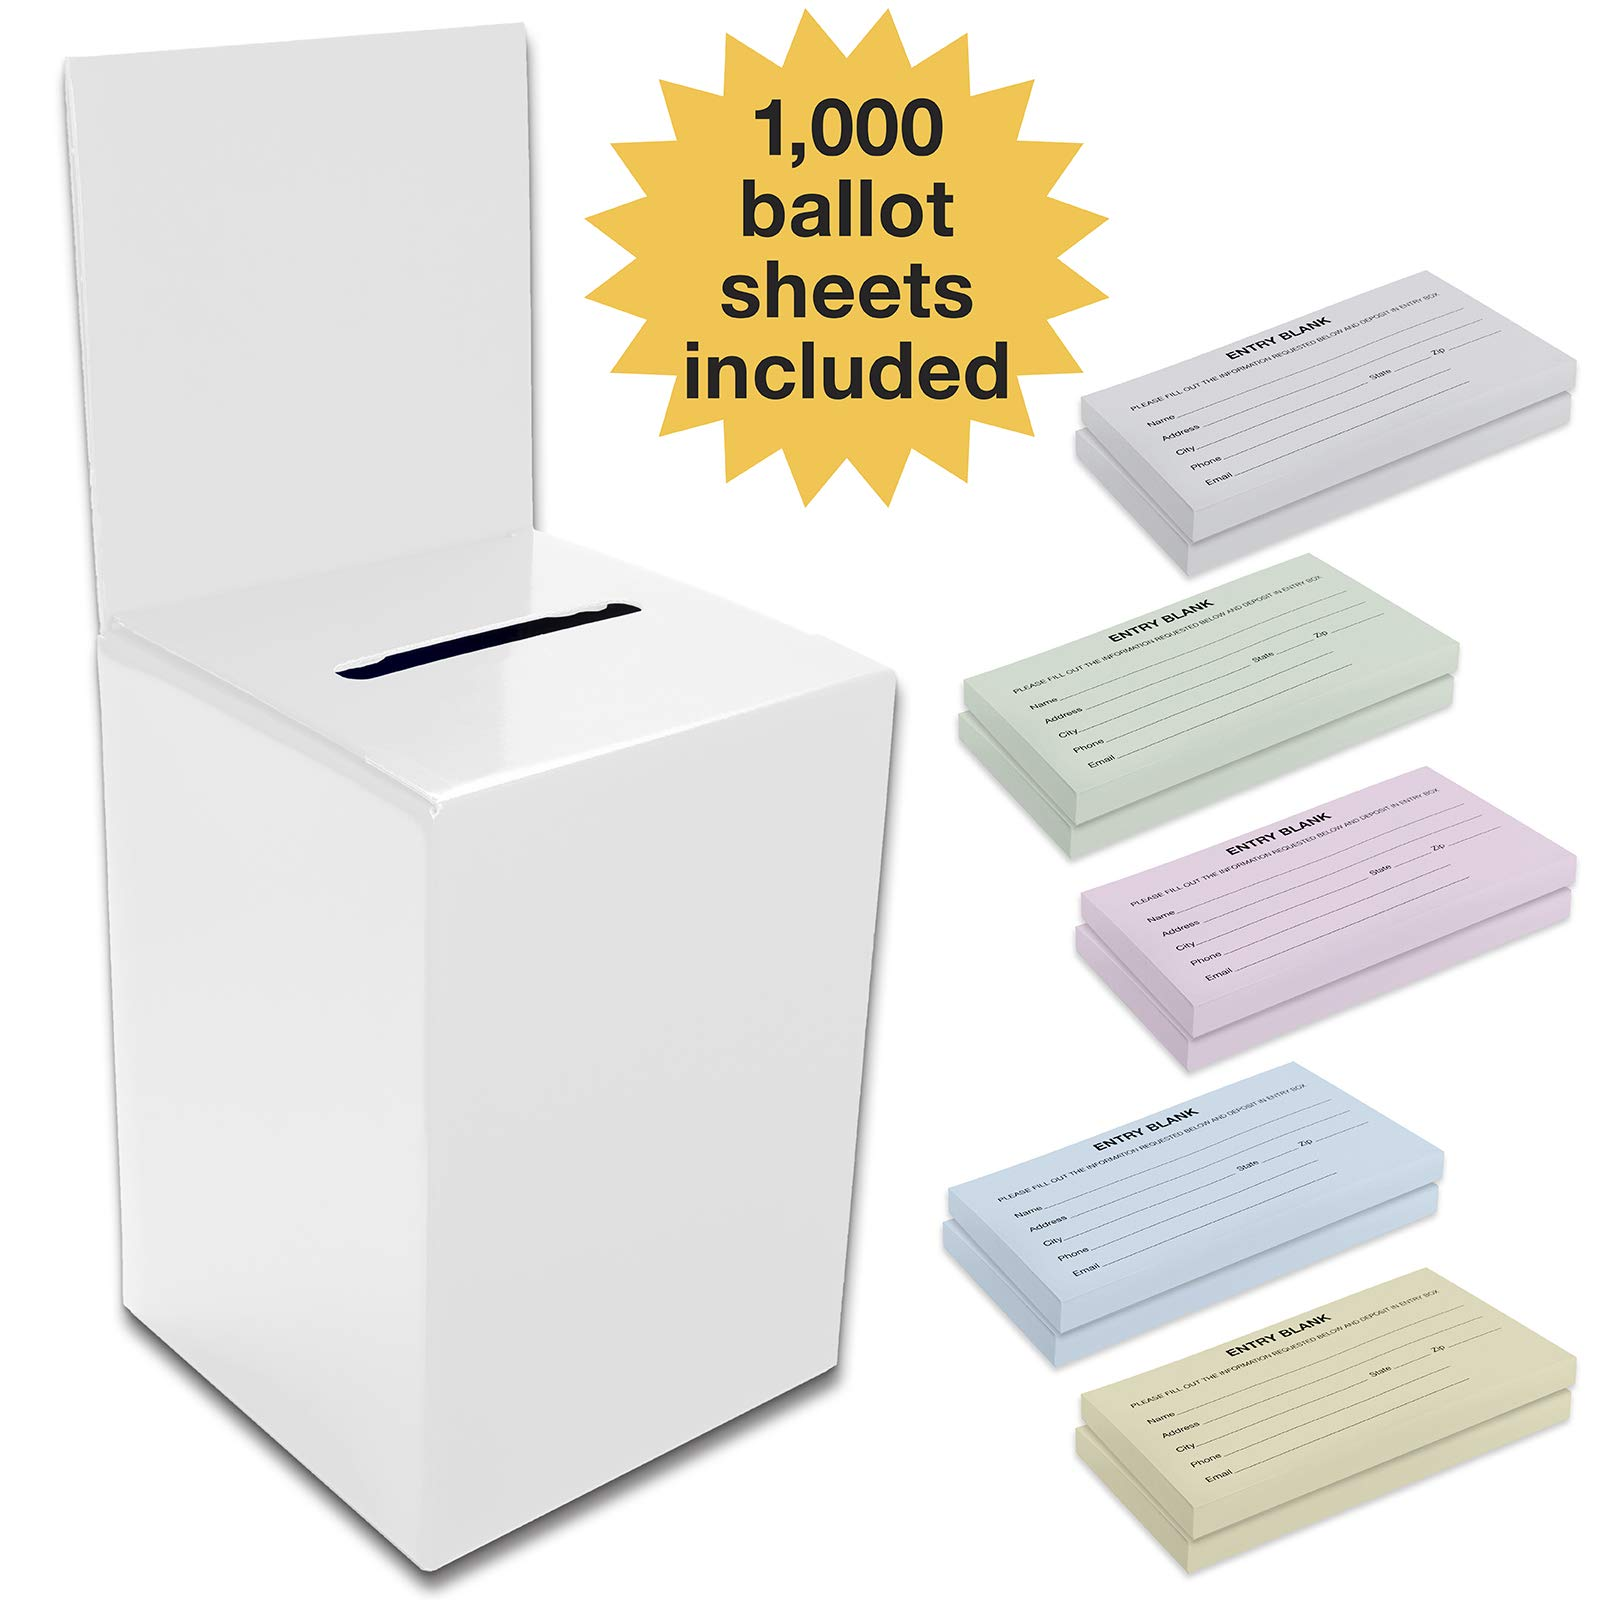 Large Ballot Box/Charity Box/Suggestion Box/Includes 1000 Entry Sheets/Use for raffles, Lead Generation, Collecting Business Cards, Voting, contests, suggestions (White) by Excello Global Products